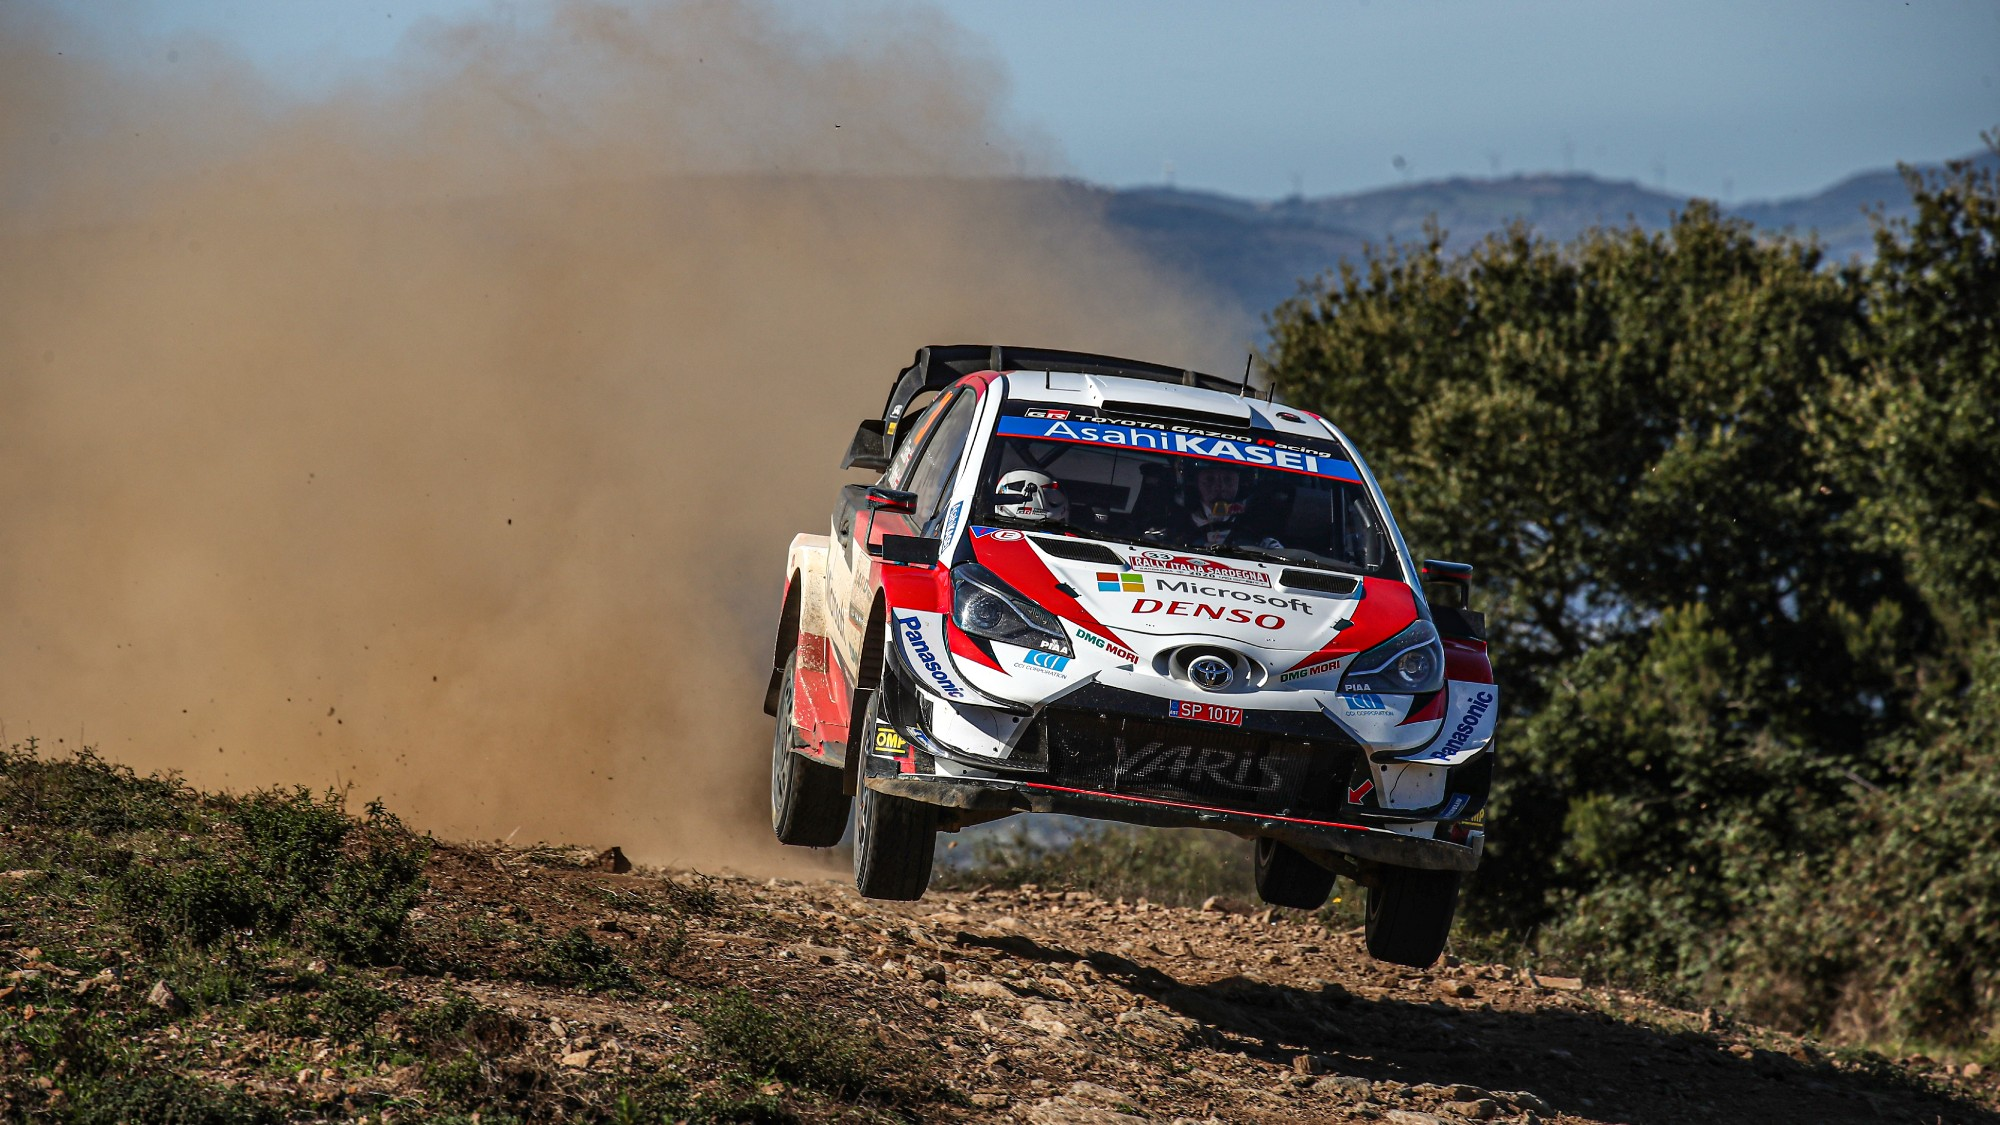 WRC confirms Ypres Rally cancellation due to rising coronavirus cases